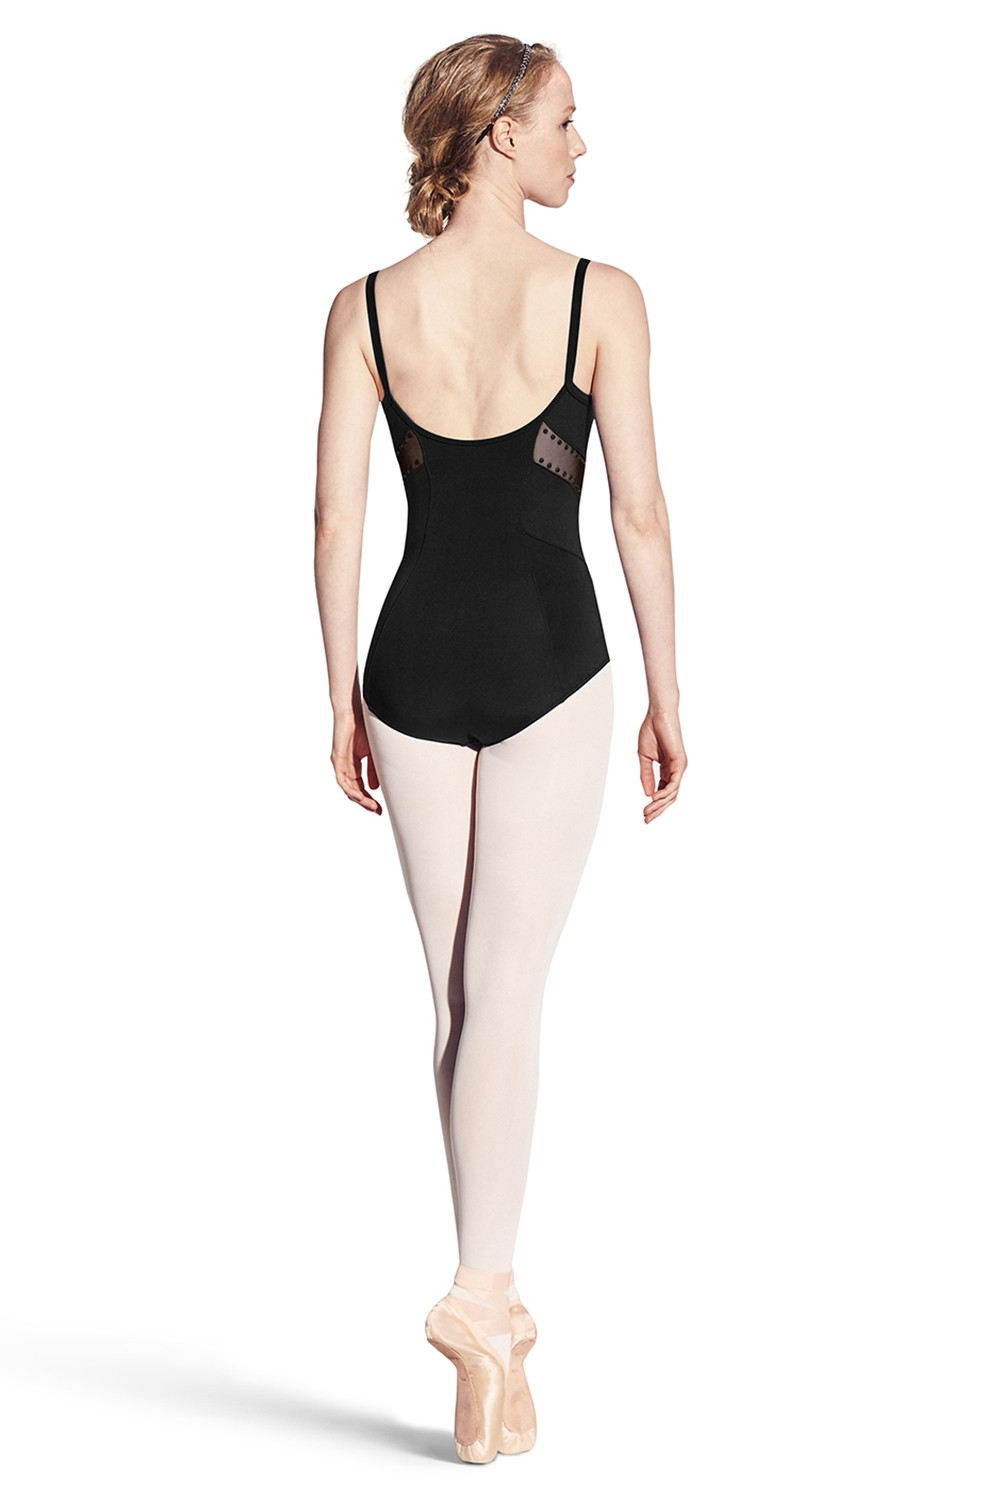 Abella Women's Dance Leotards